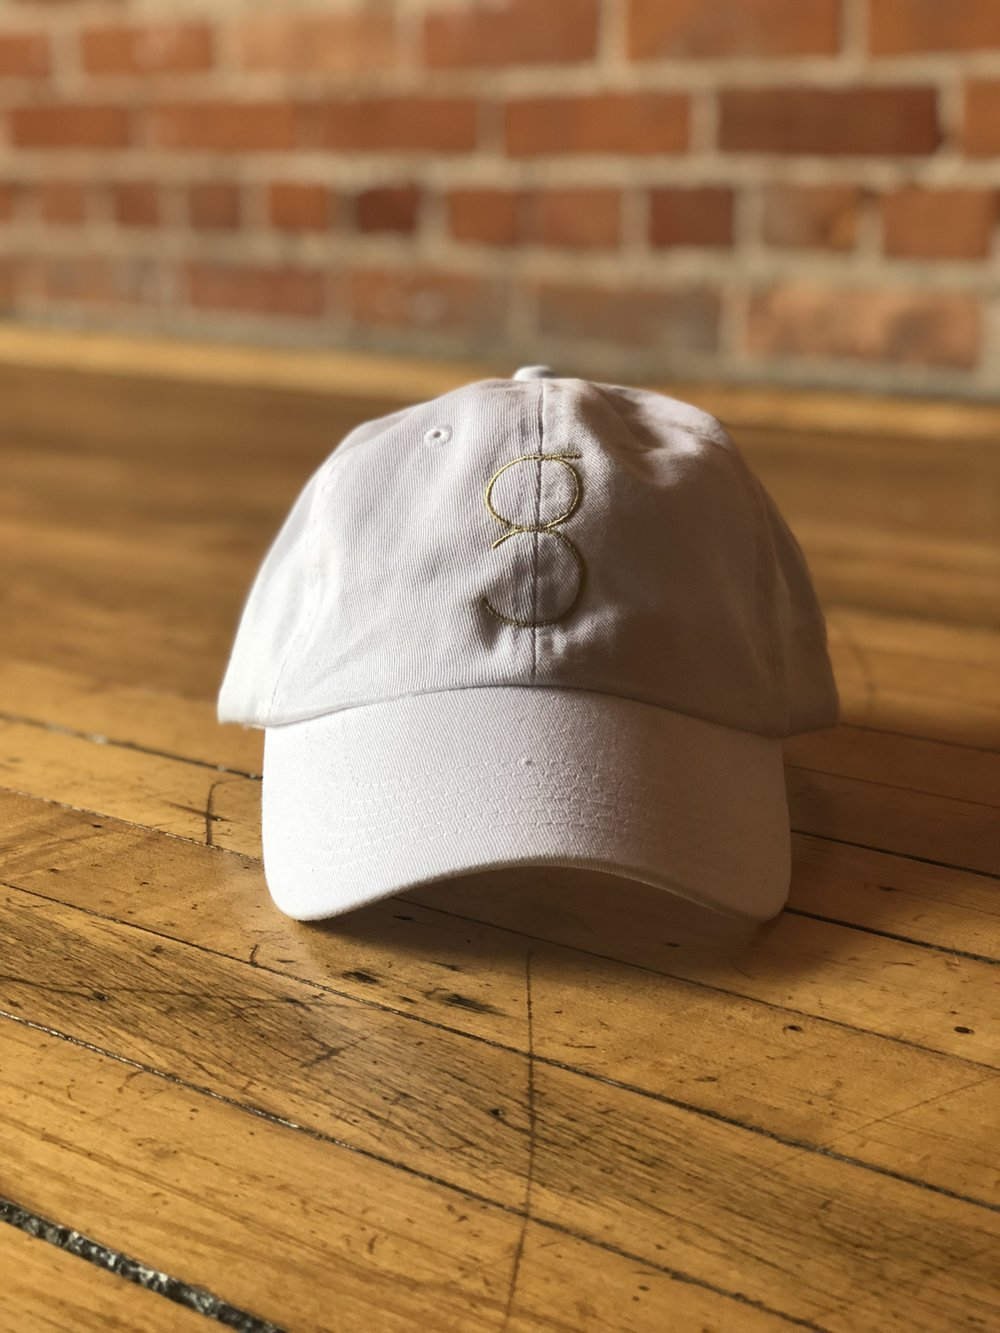 - Grace Yoga Studio Dad Hat$25